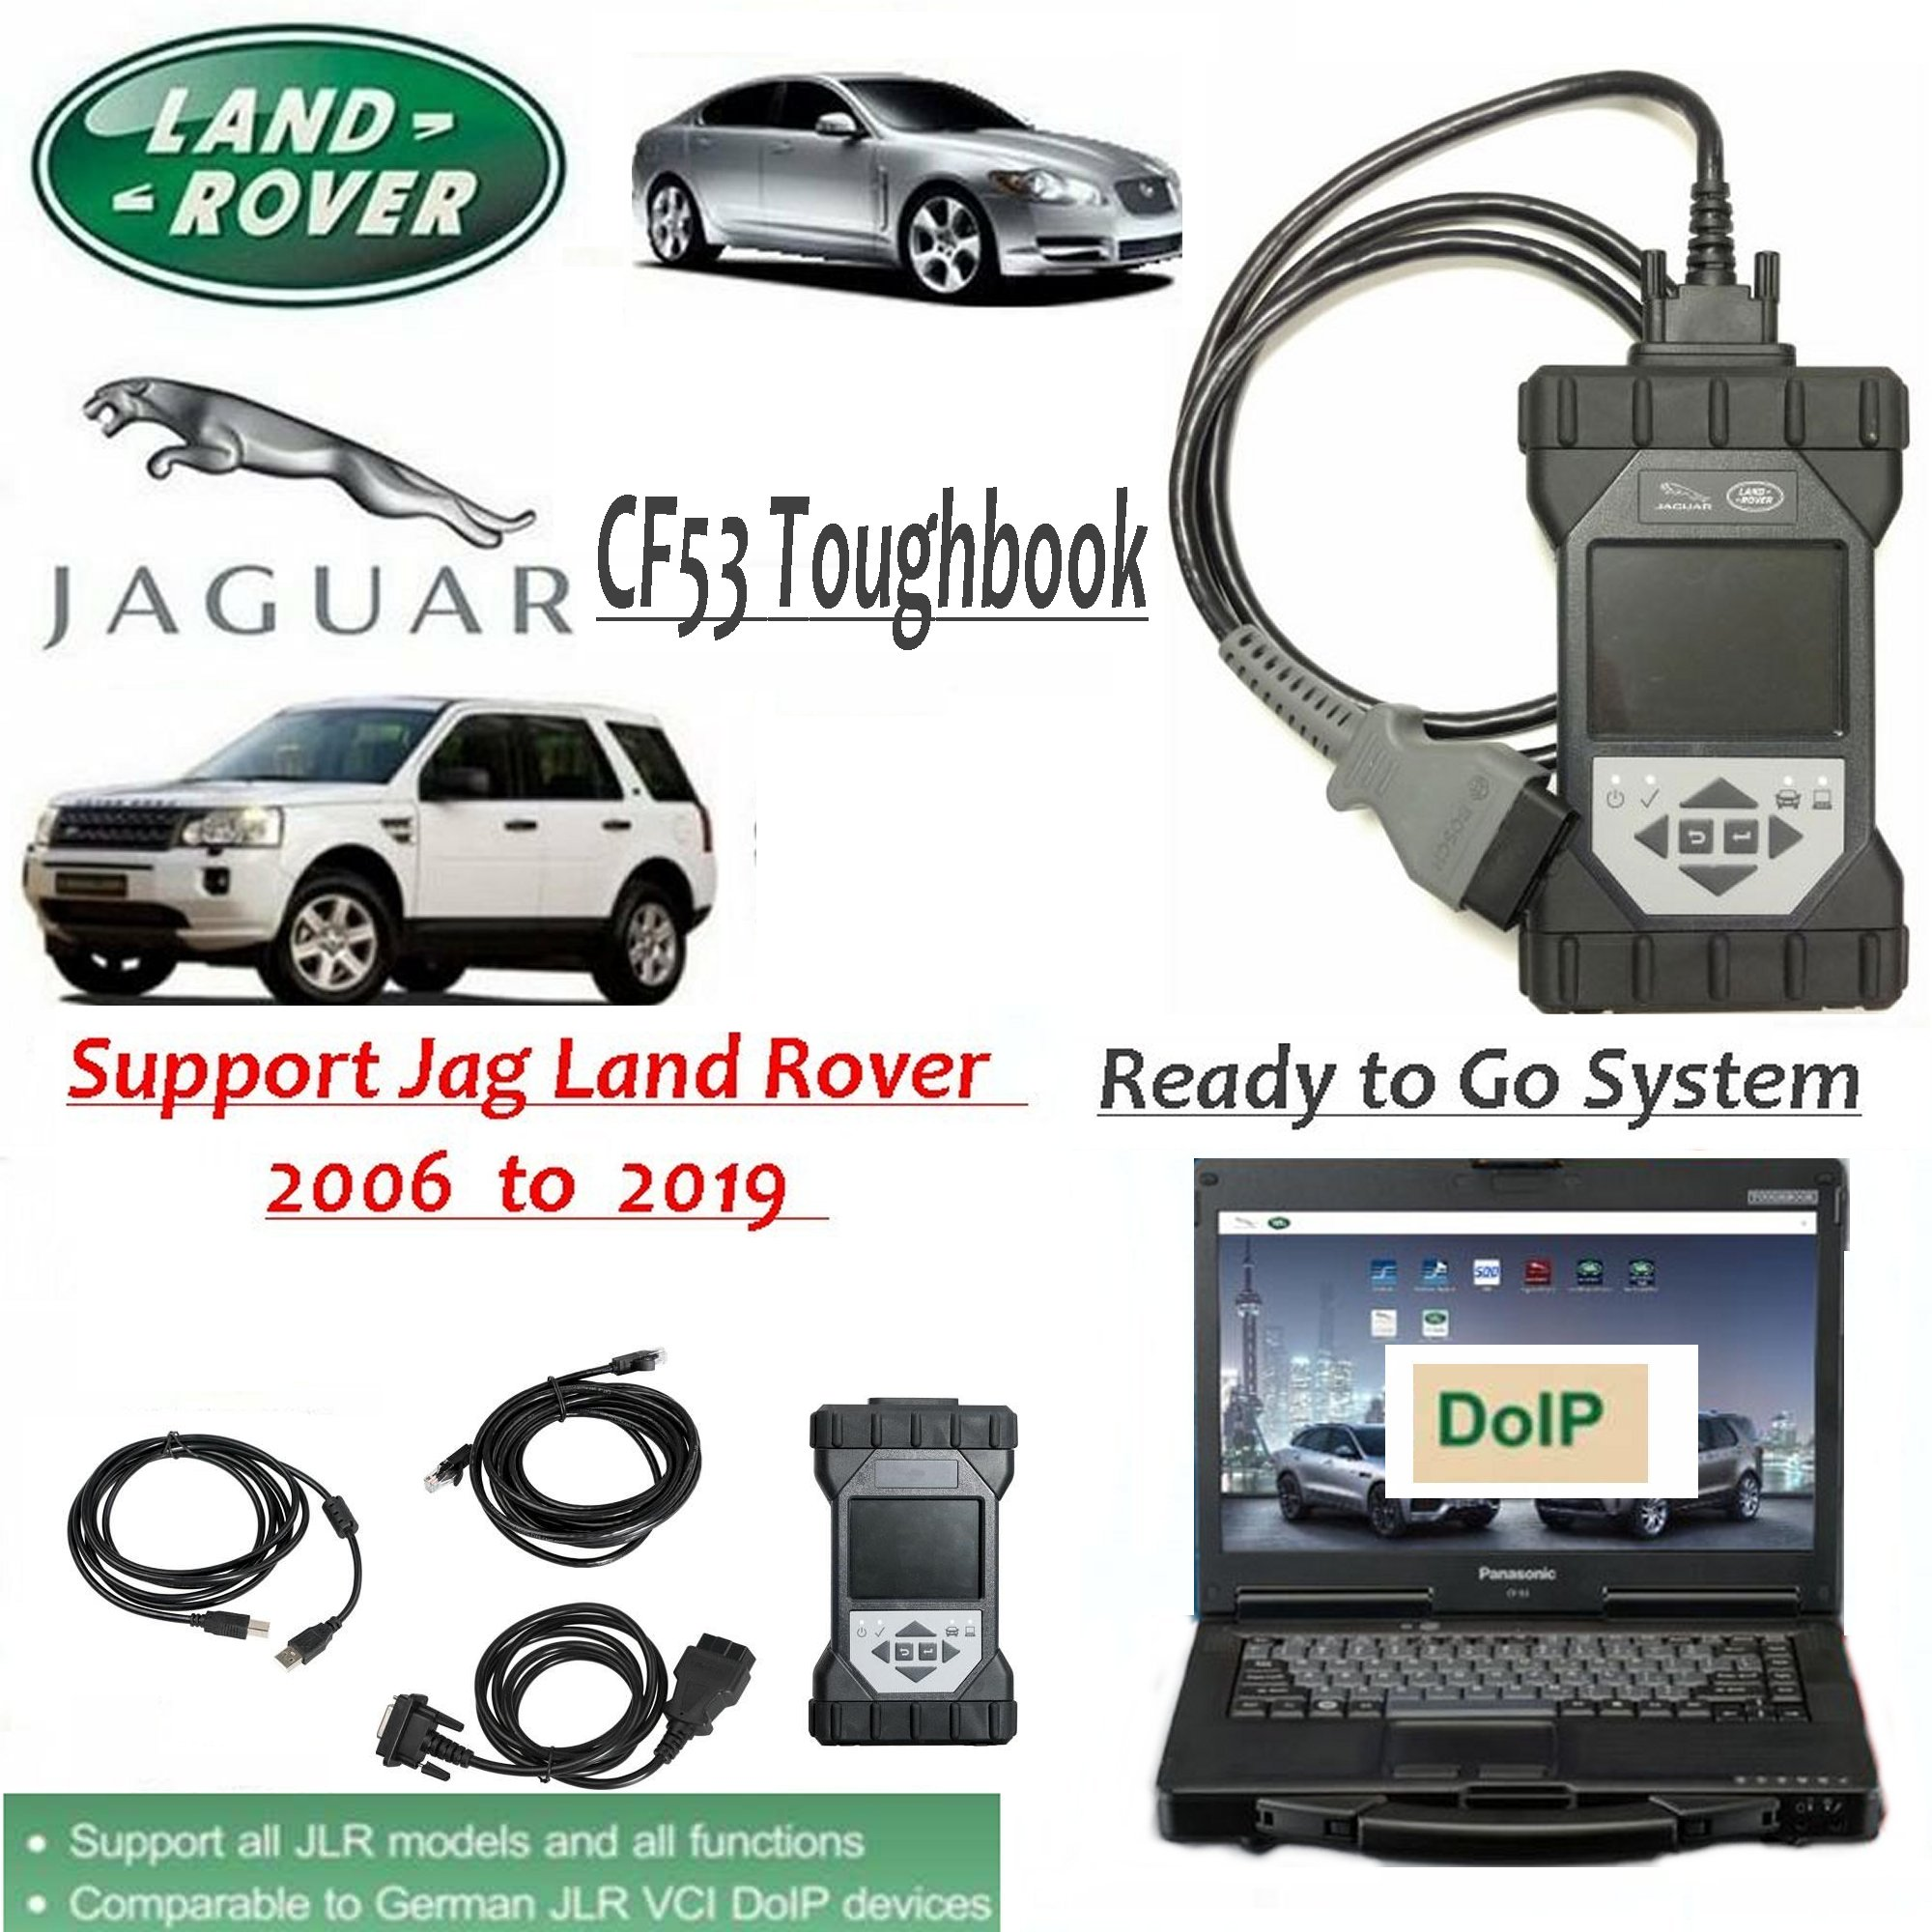 Original JLR DoiP VCI SDD Pathfinder Interface Plus Panasonic CF53 Laptop for Jaguar Land Rover from 2005 to 2019+   Ready to go Laptop for SDD Pathfinder